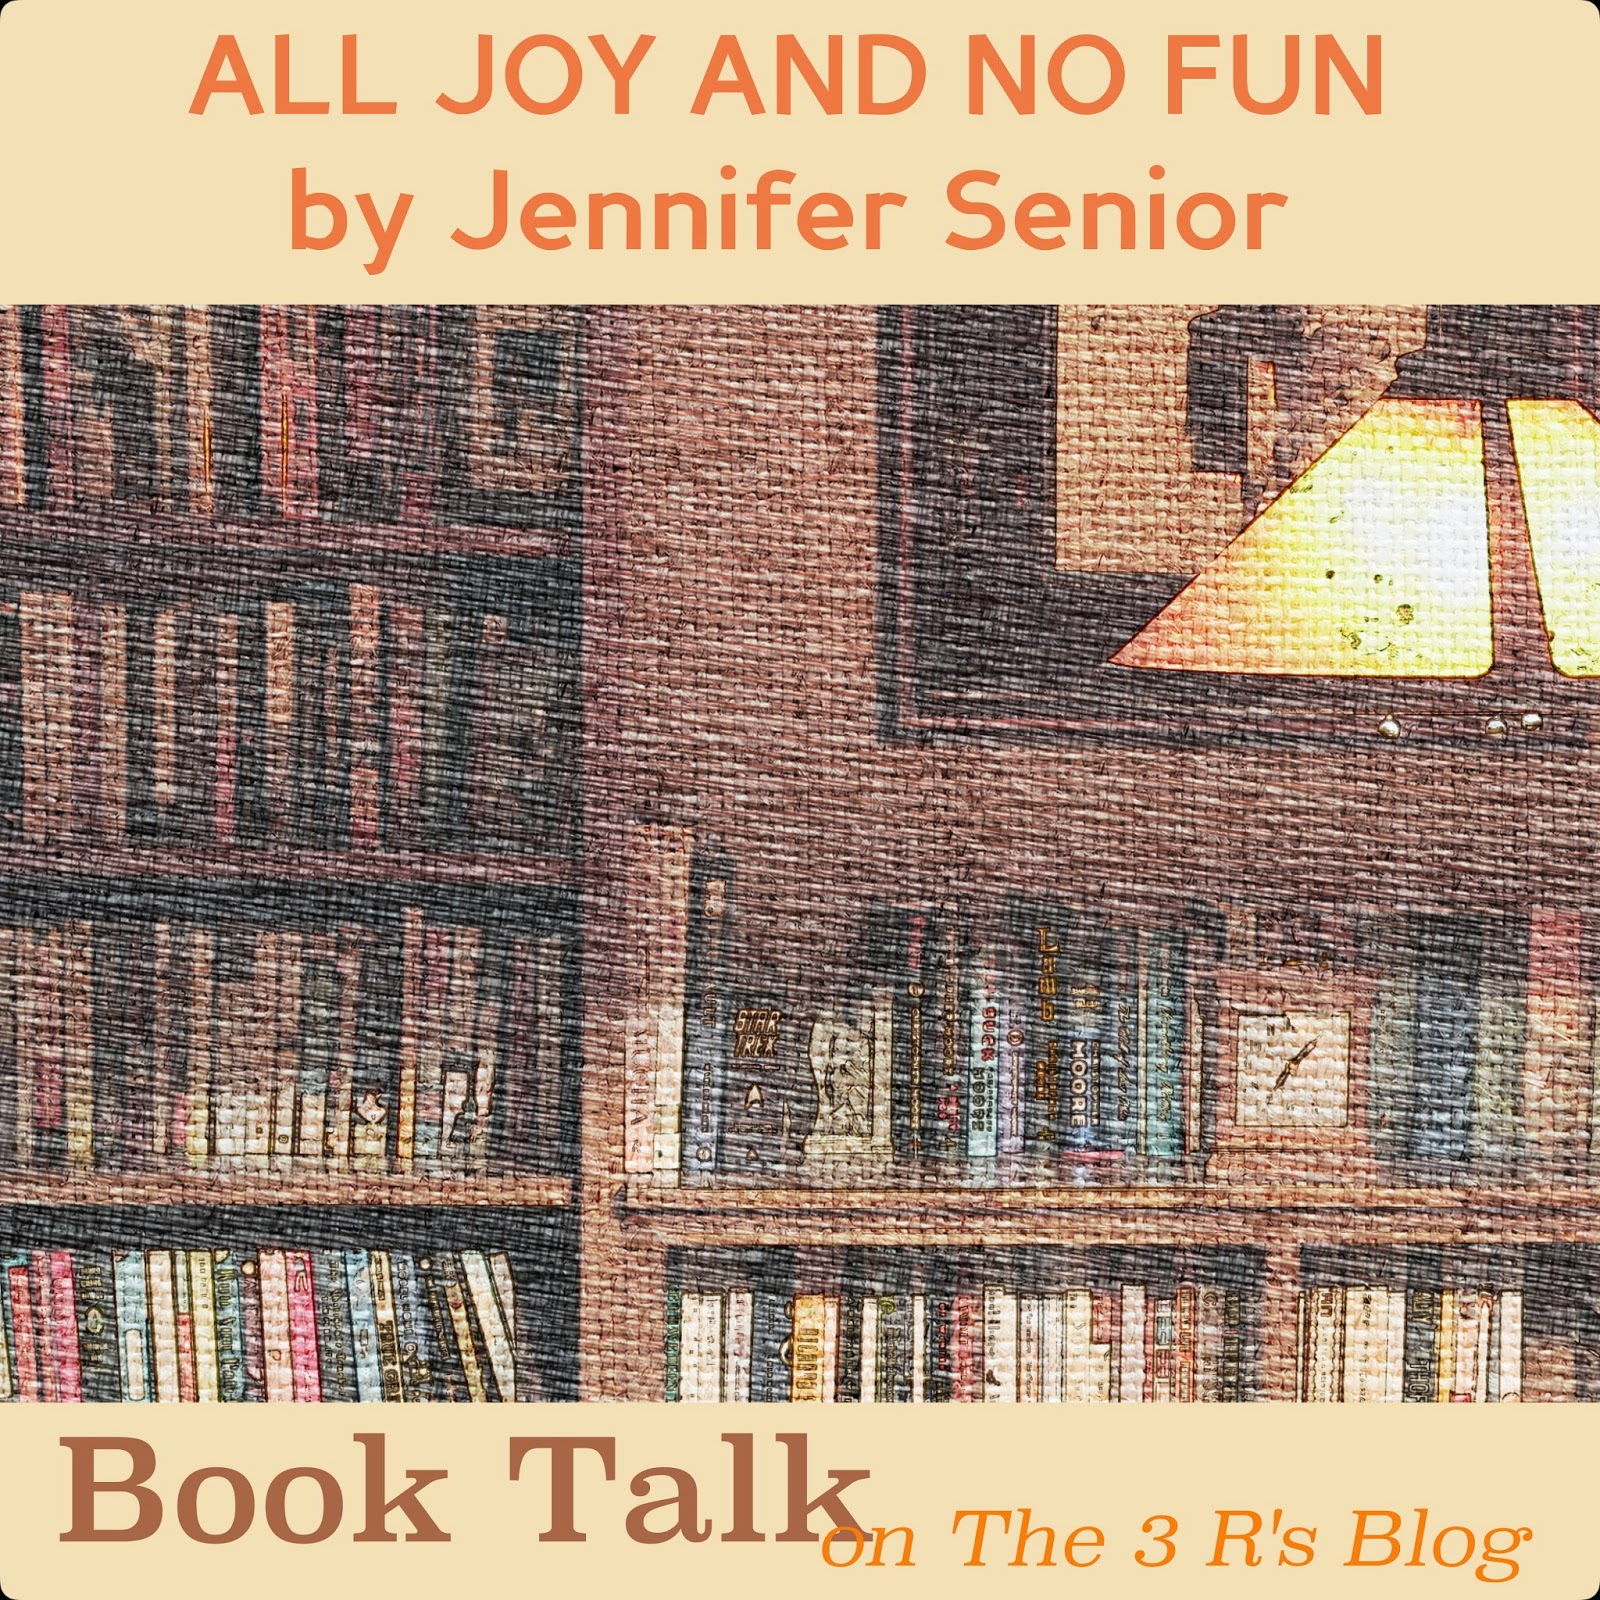 Audiobook discussion on The 3 Rs Blog ALL JOY AND NO FUN: THE PARADOX OF MODERN PARENTHOOD by Jennifer Senior